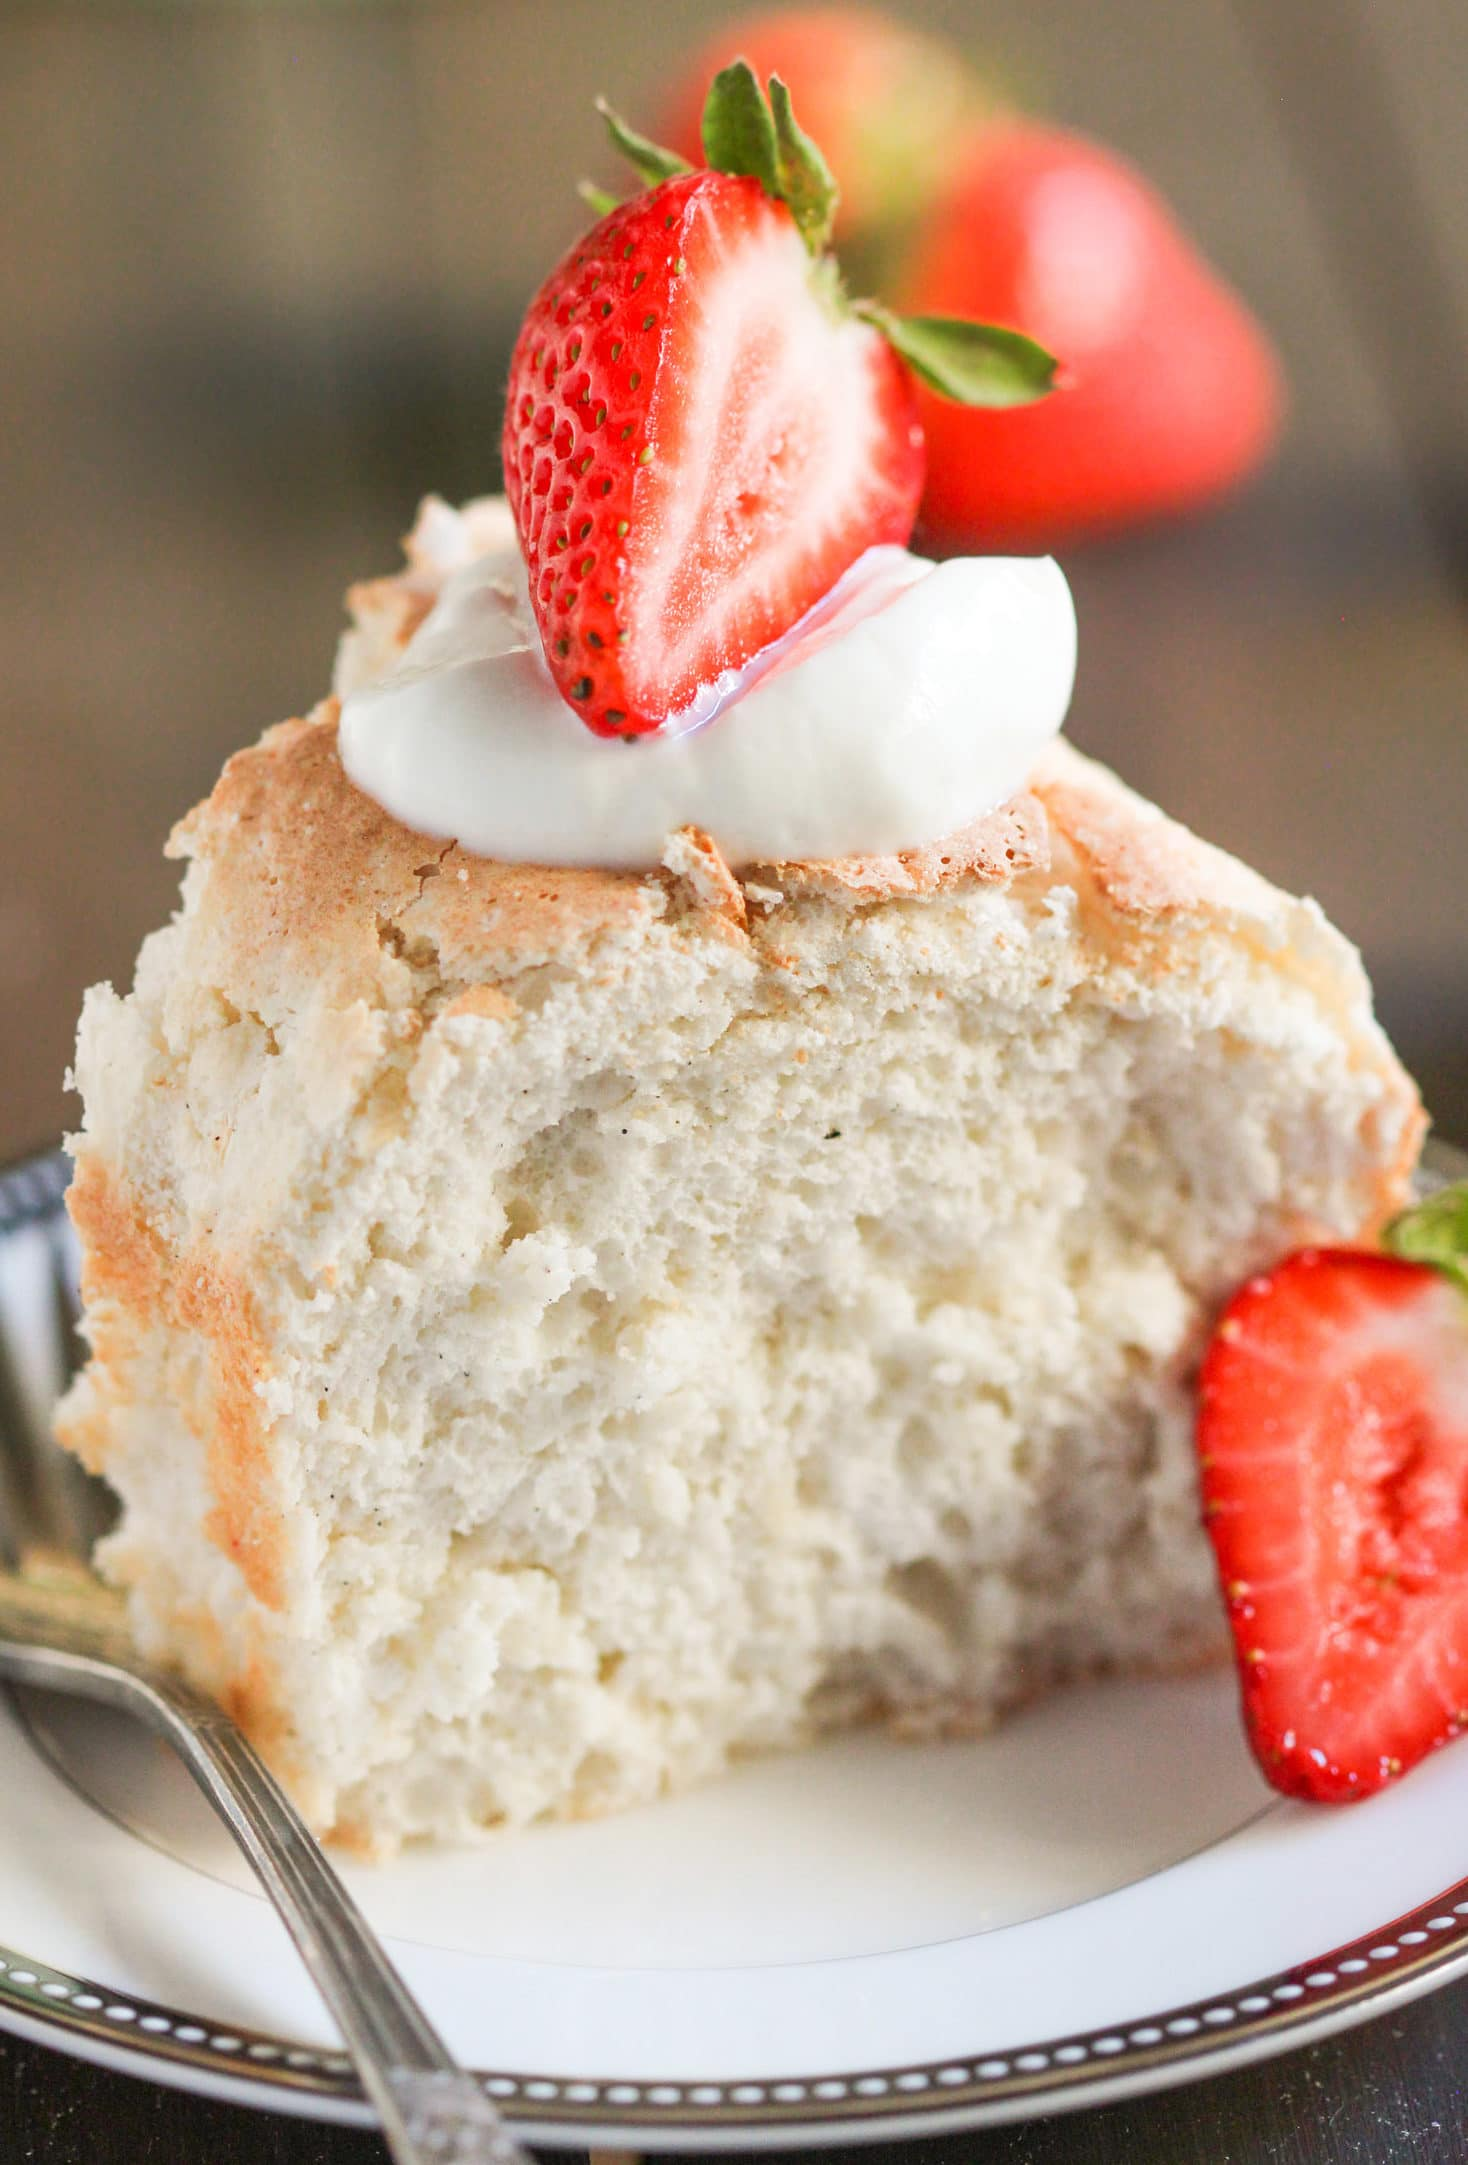 One bite of this Healthy Angel Food Cake and you'll be convinced you're eating a light, fluffy, and sweet, dessert-like cloud. It's perfectly sweet, perfectly moist, and perfectly flavored with vanilla beans. You'd never ever guess that this recipe is totally guilt free, sugar free, fat free, low carb, gluten free, and dairy free too! Healthy Dessert Recipes at the Desserts With Benefits Blog (www.DessertsWithBenefits.com)